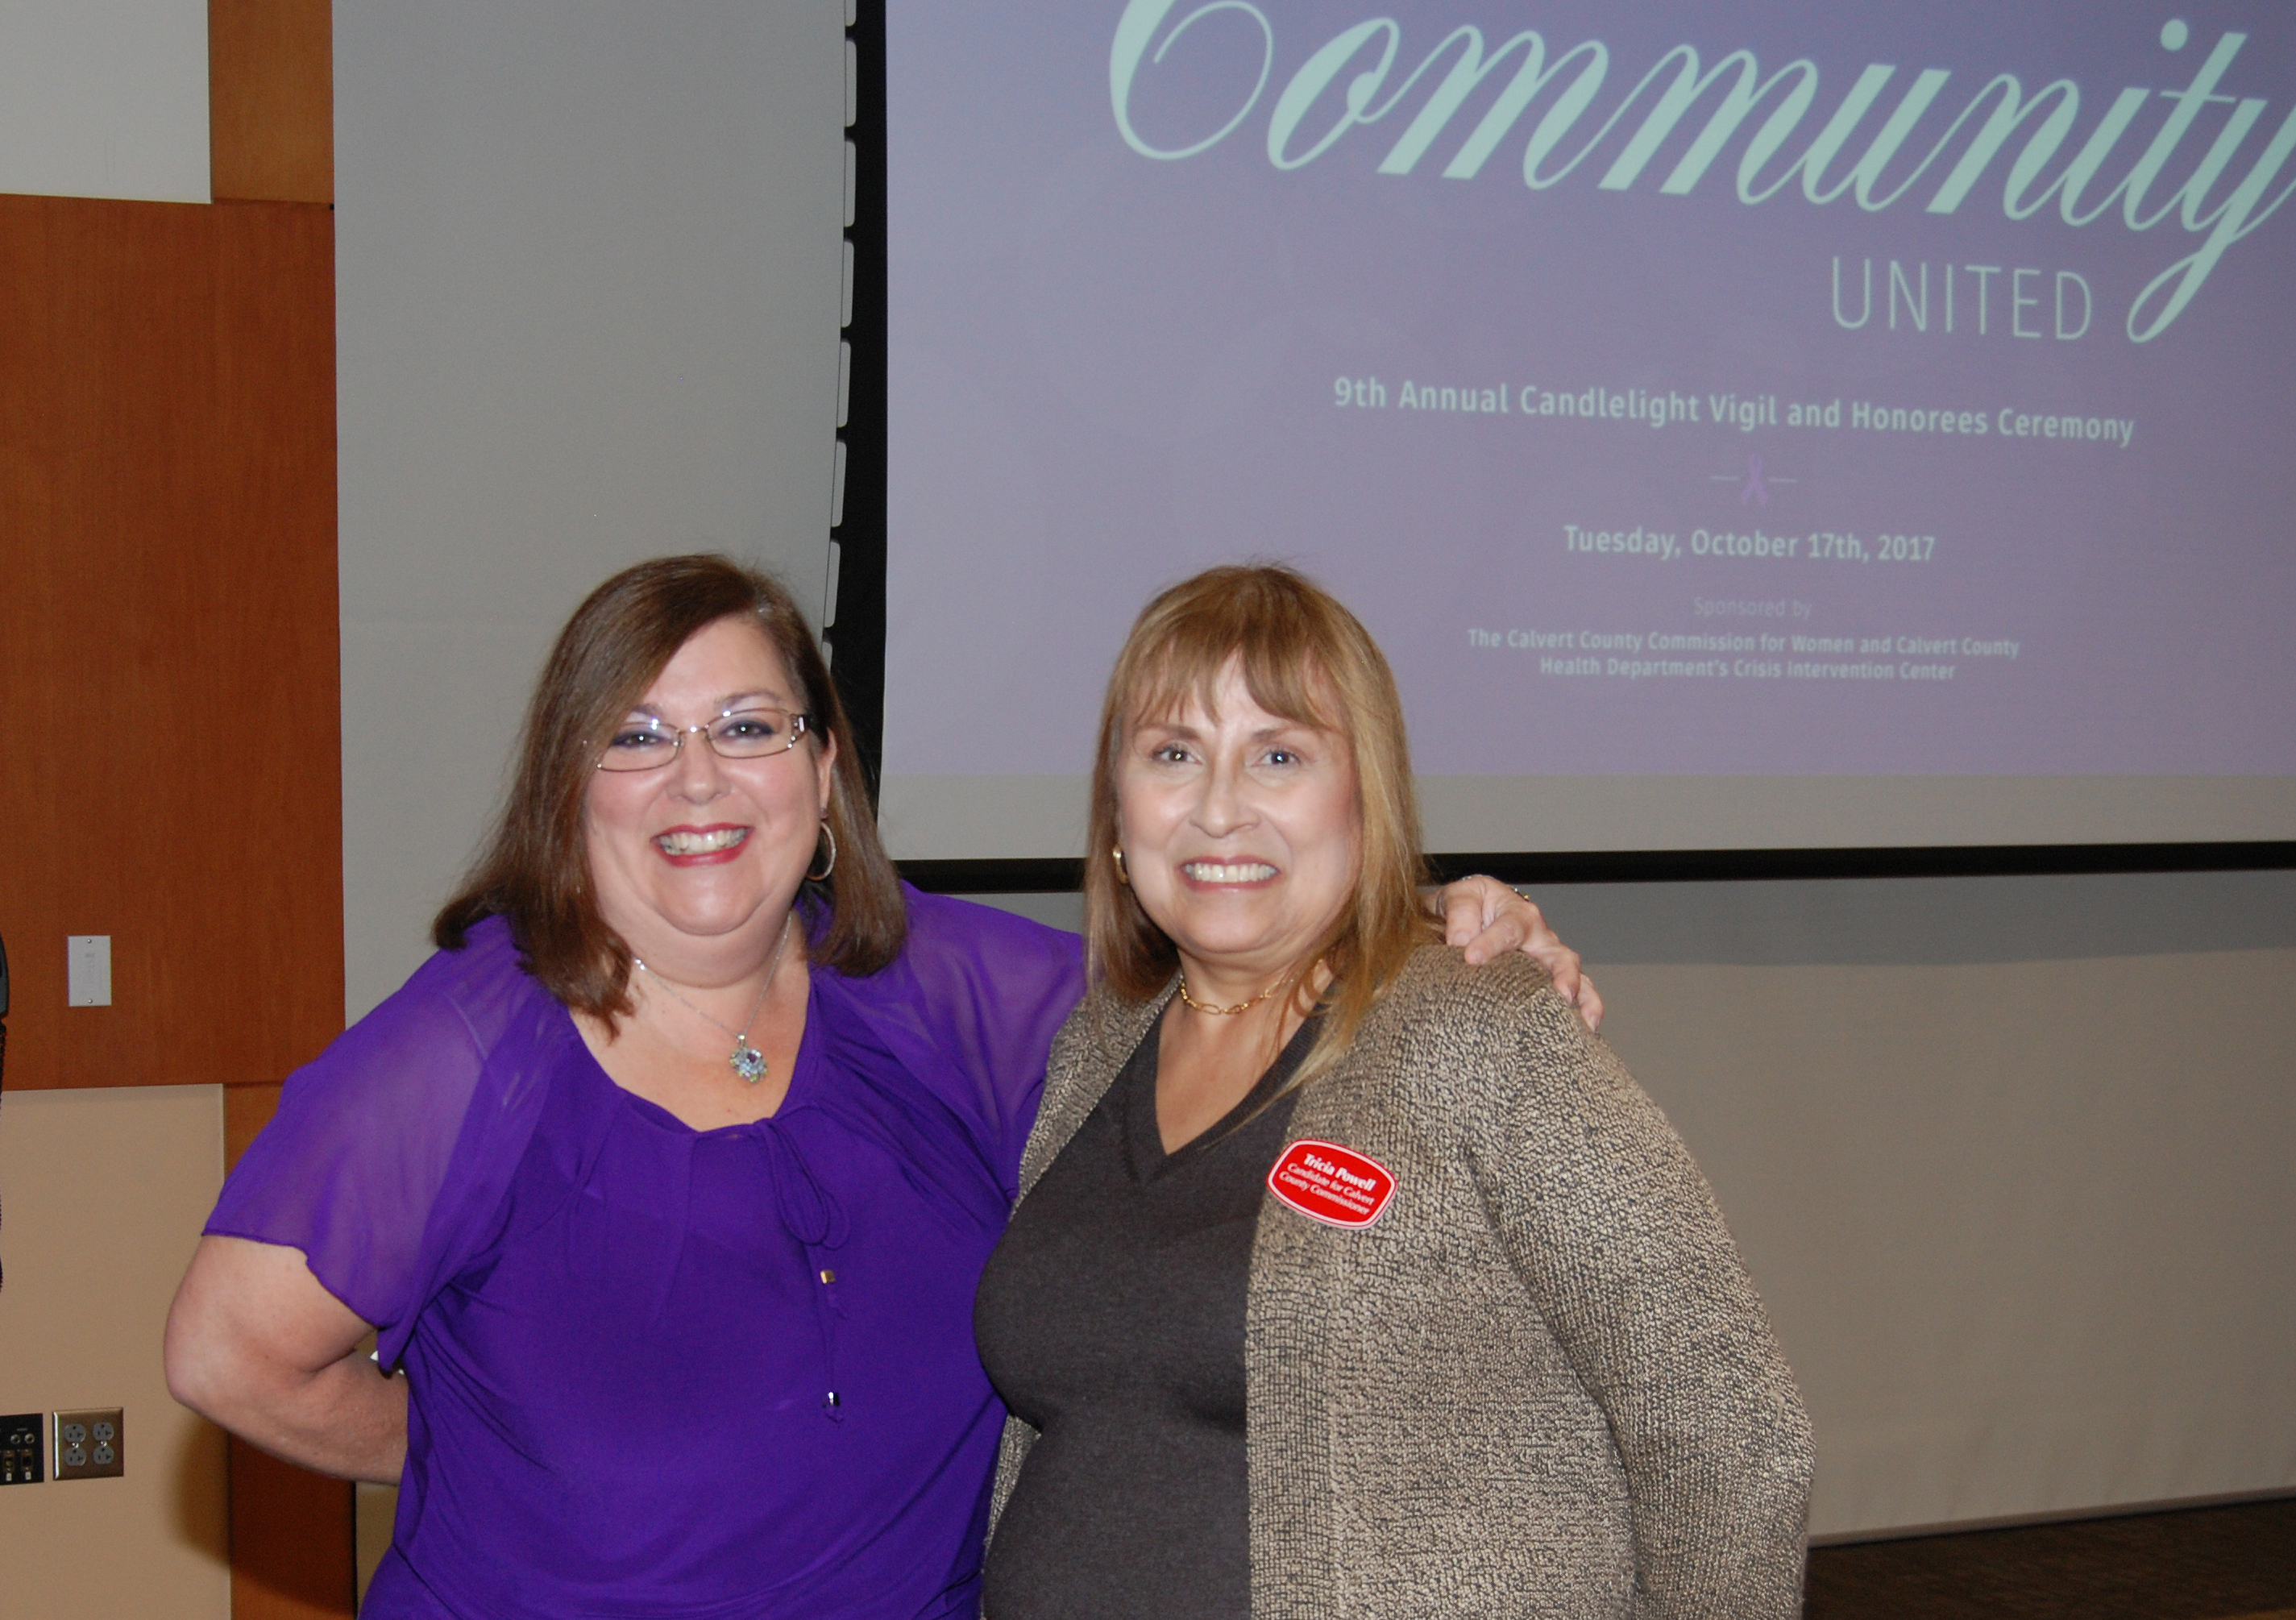 Two Women Smiling with Community United Presentation Behind Them on Screen